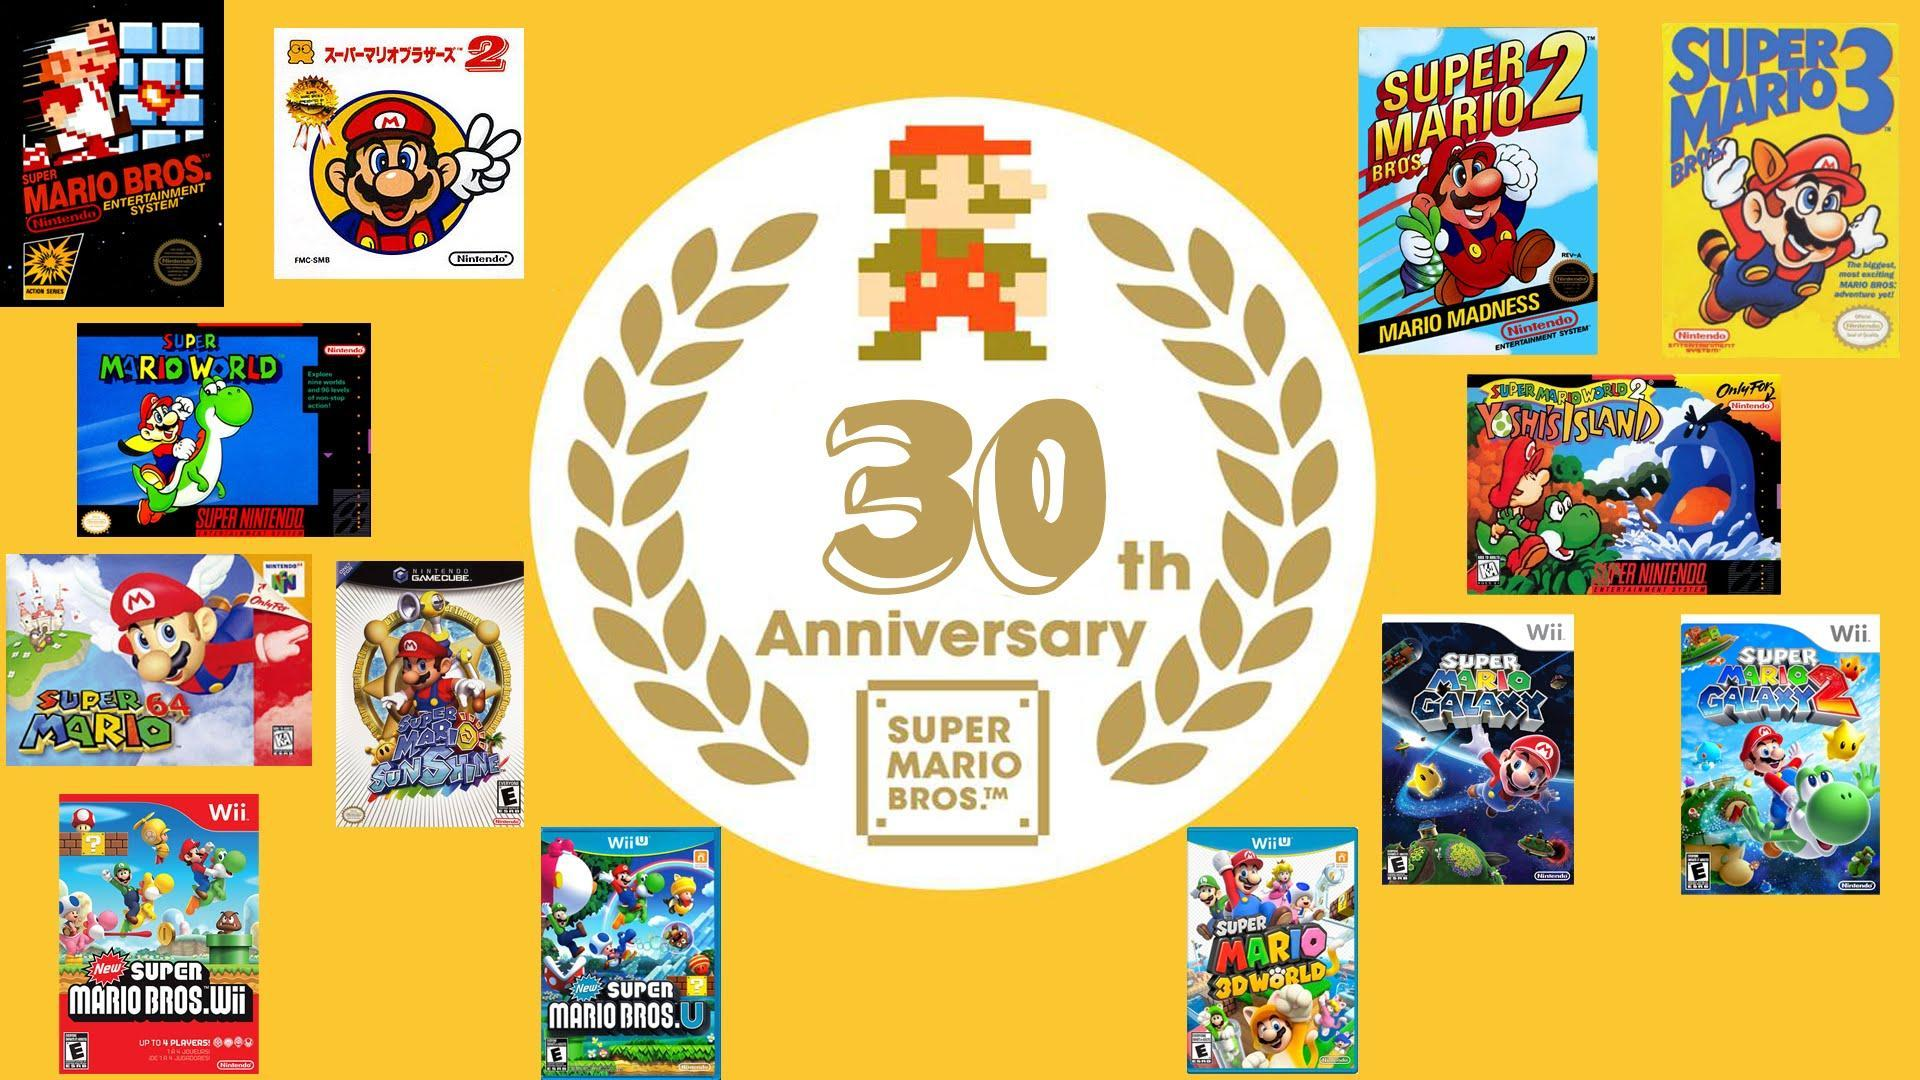 What is your favorite Mario game?